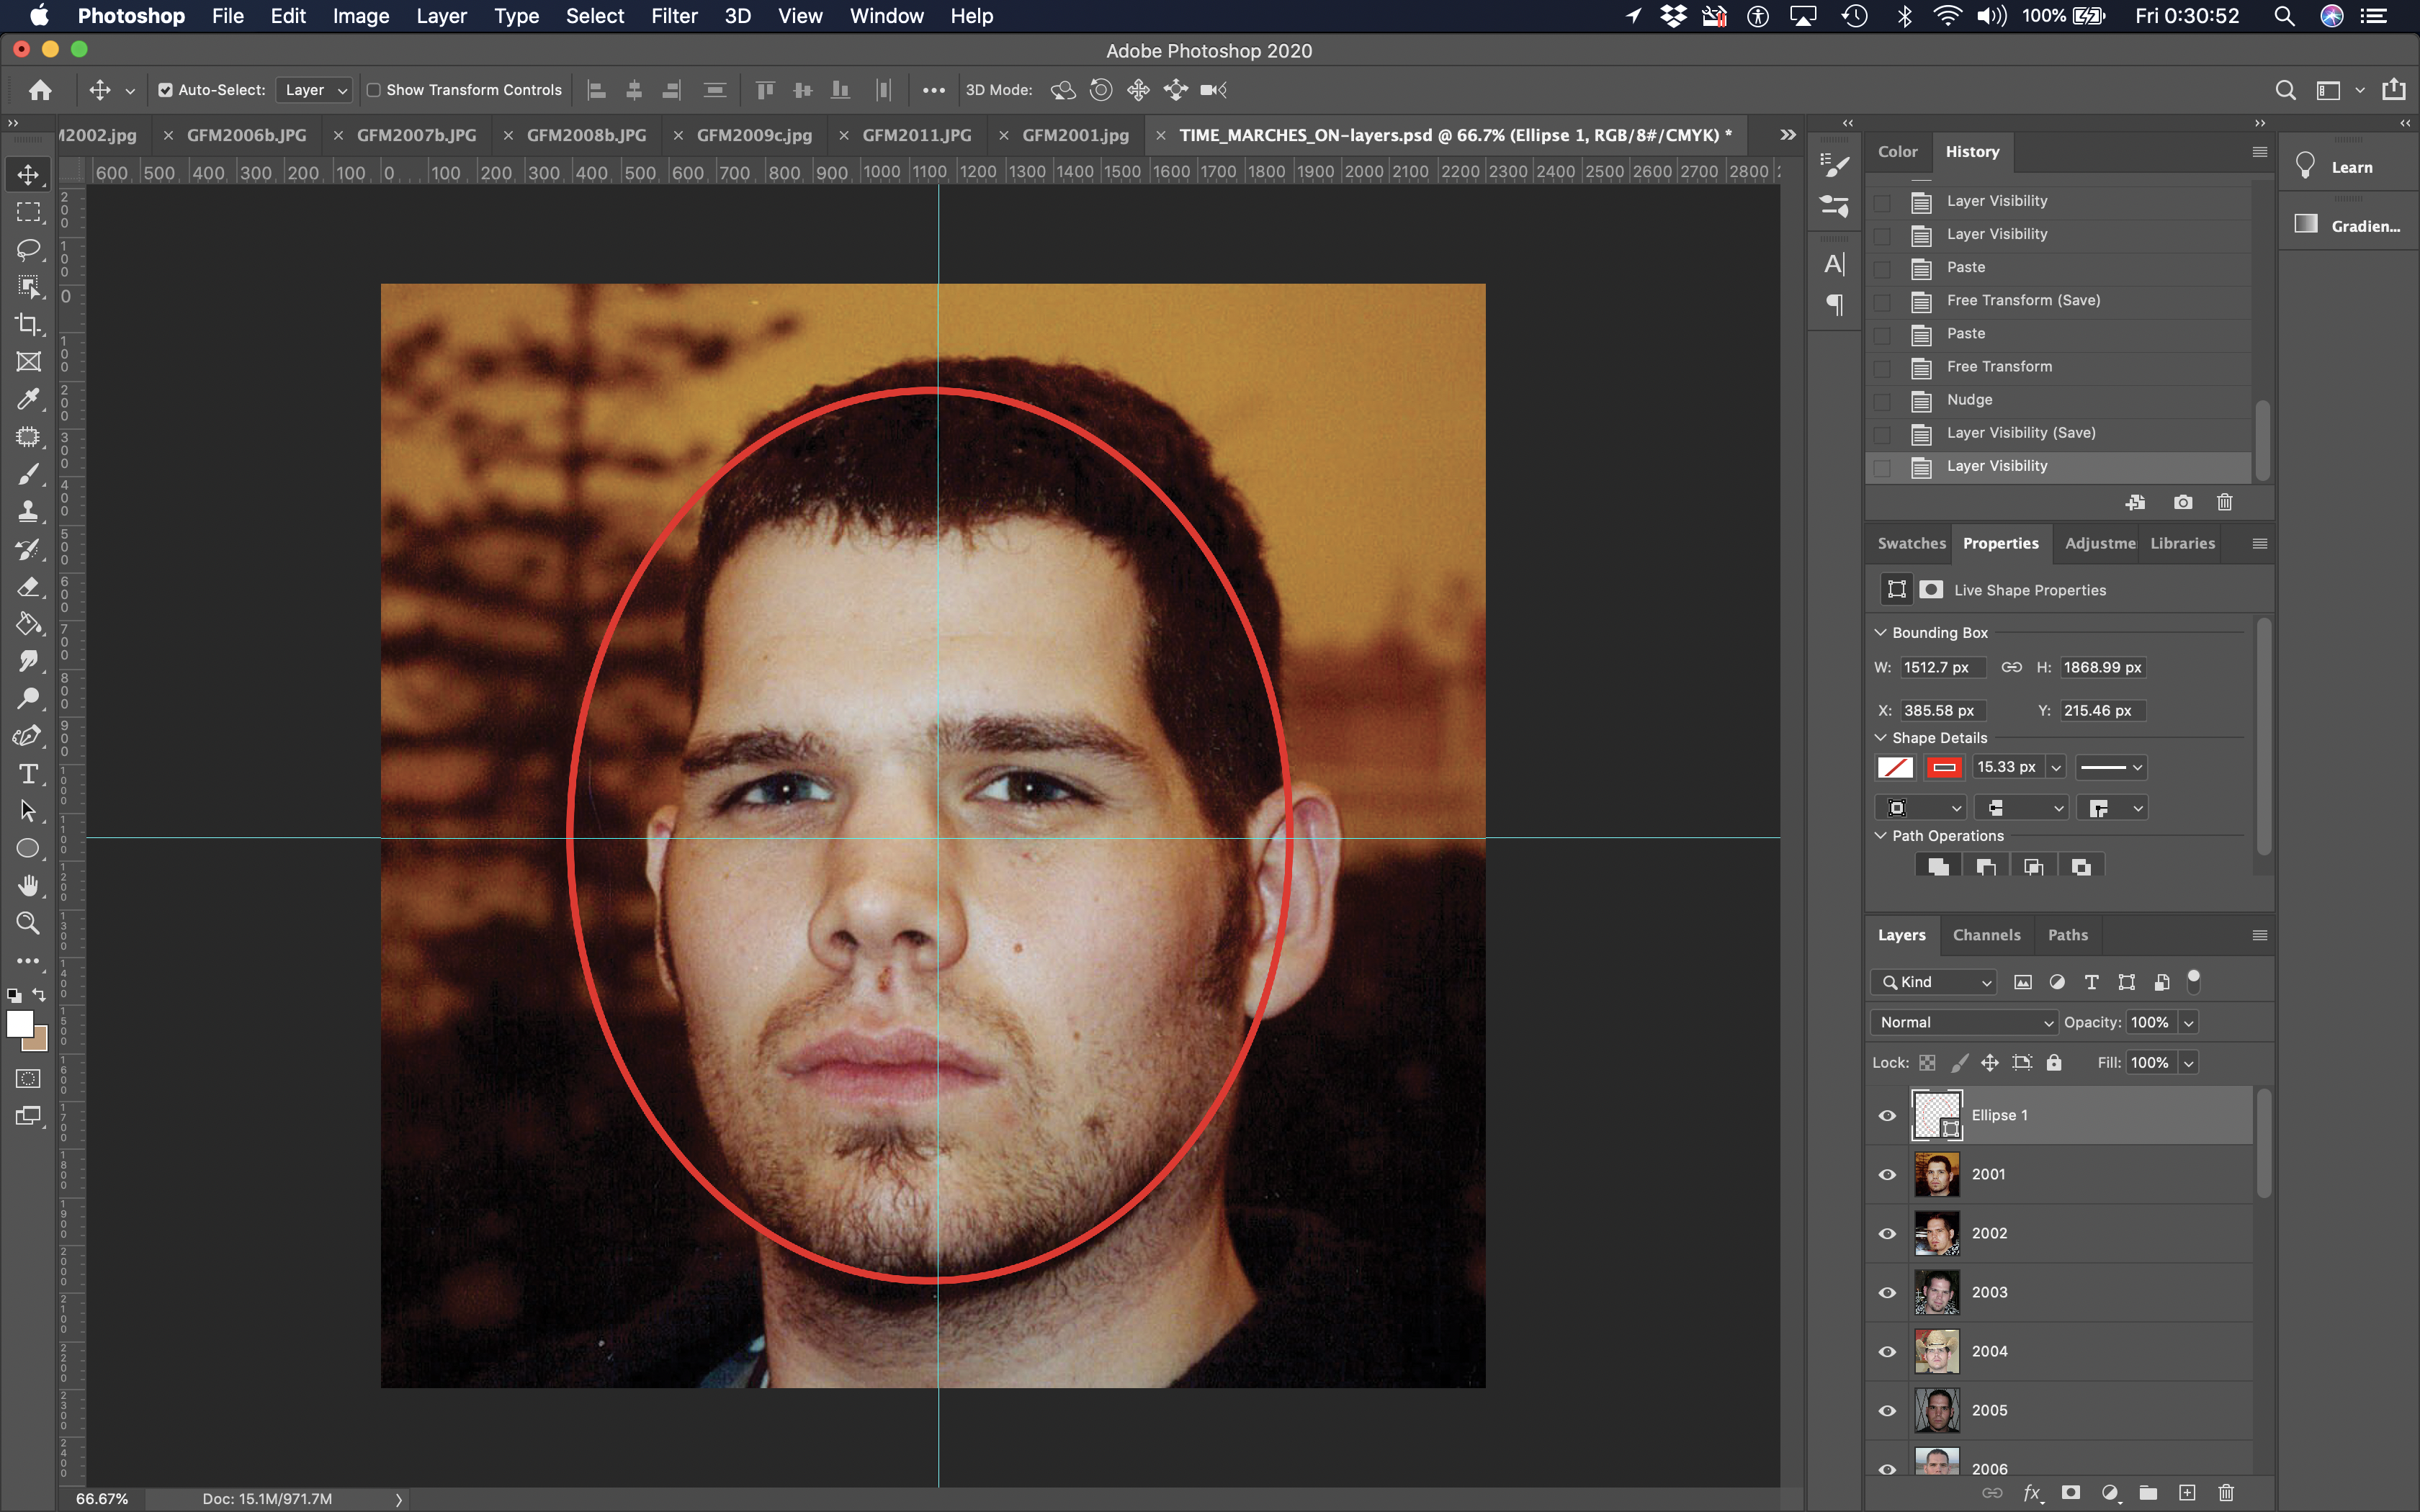 Screen Shot of Photoshopping Images for my Sketch comparing 20 Years of Face Pictures